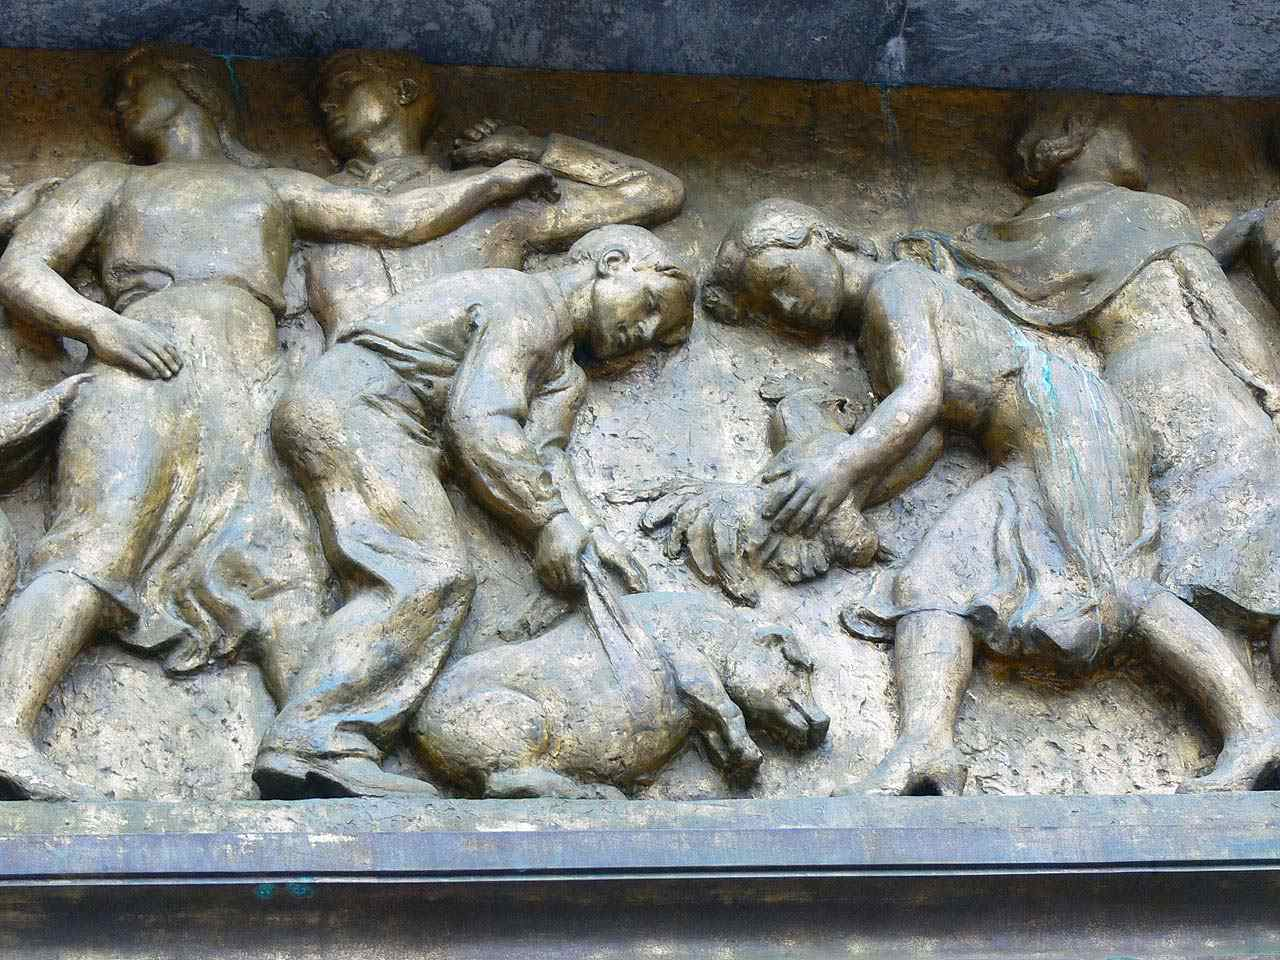 carved scene of people with a pig-like animal